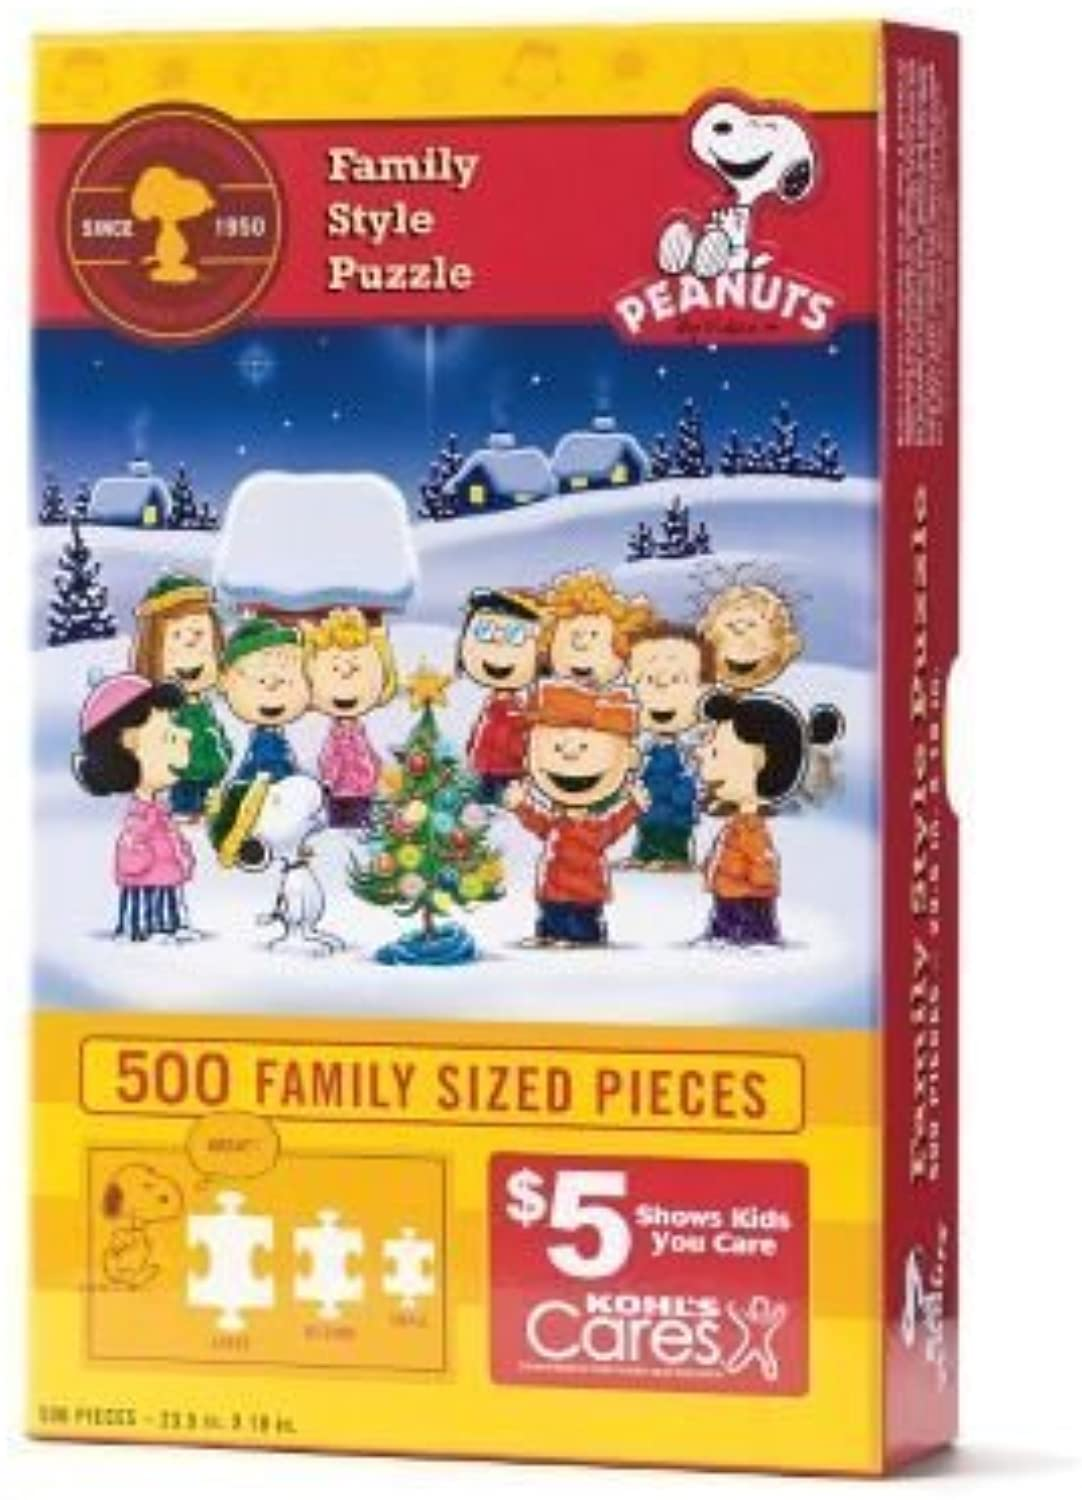 Kohl's Cares Peanuts 500pc.Family StyleJigsaw Puzzle by KCK